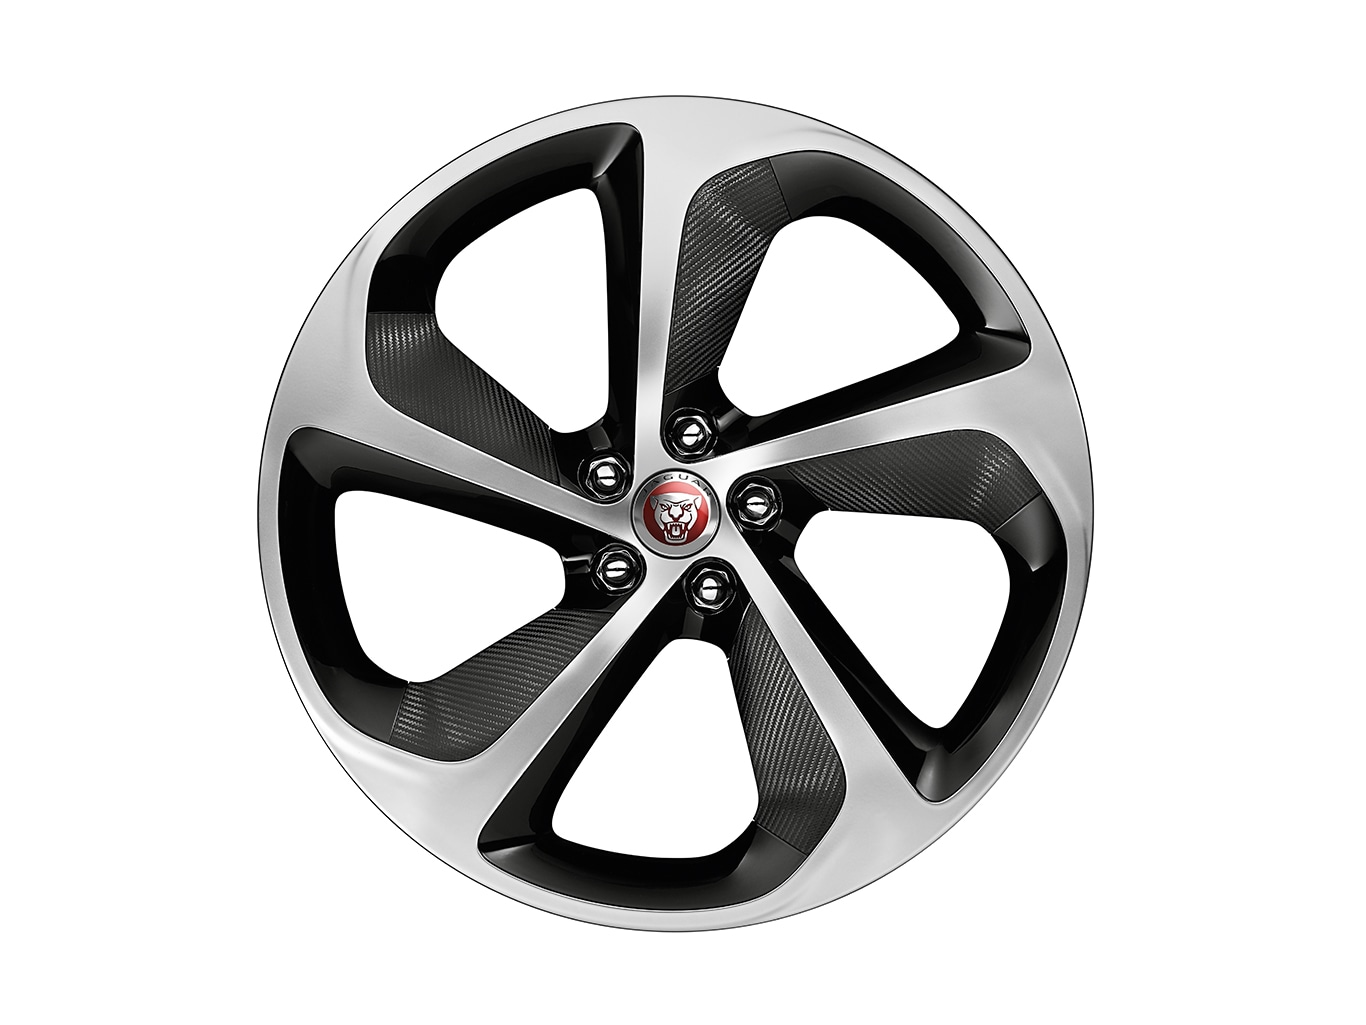 "Alloy Wheel - 20"" Style 5062, Forged, 5 spoke, Front"